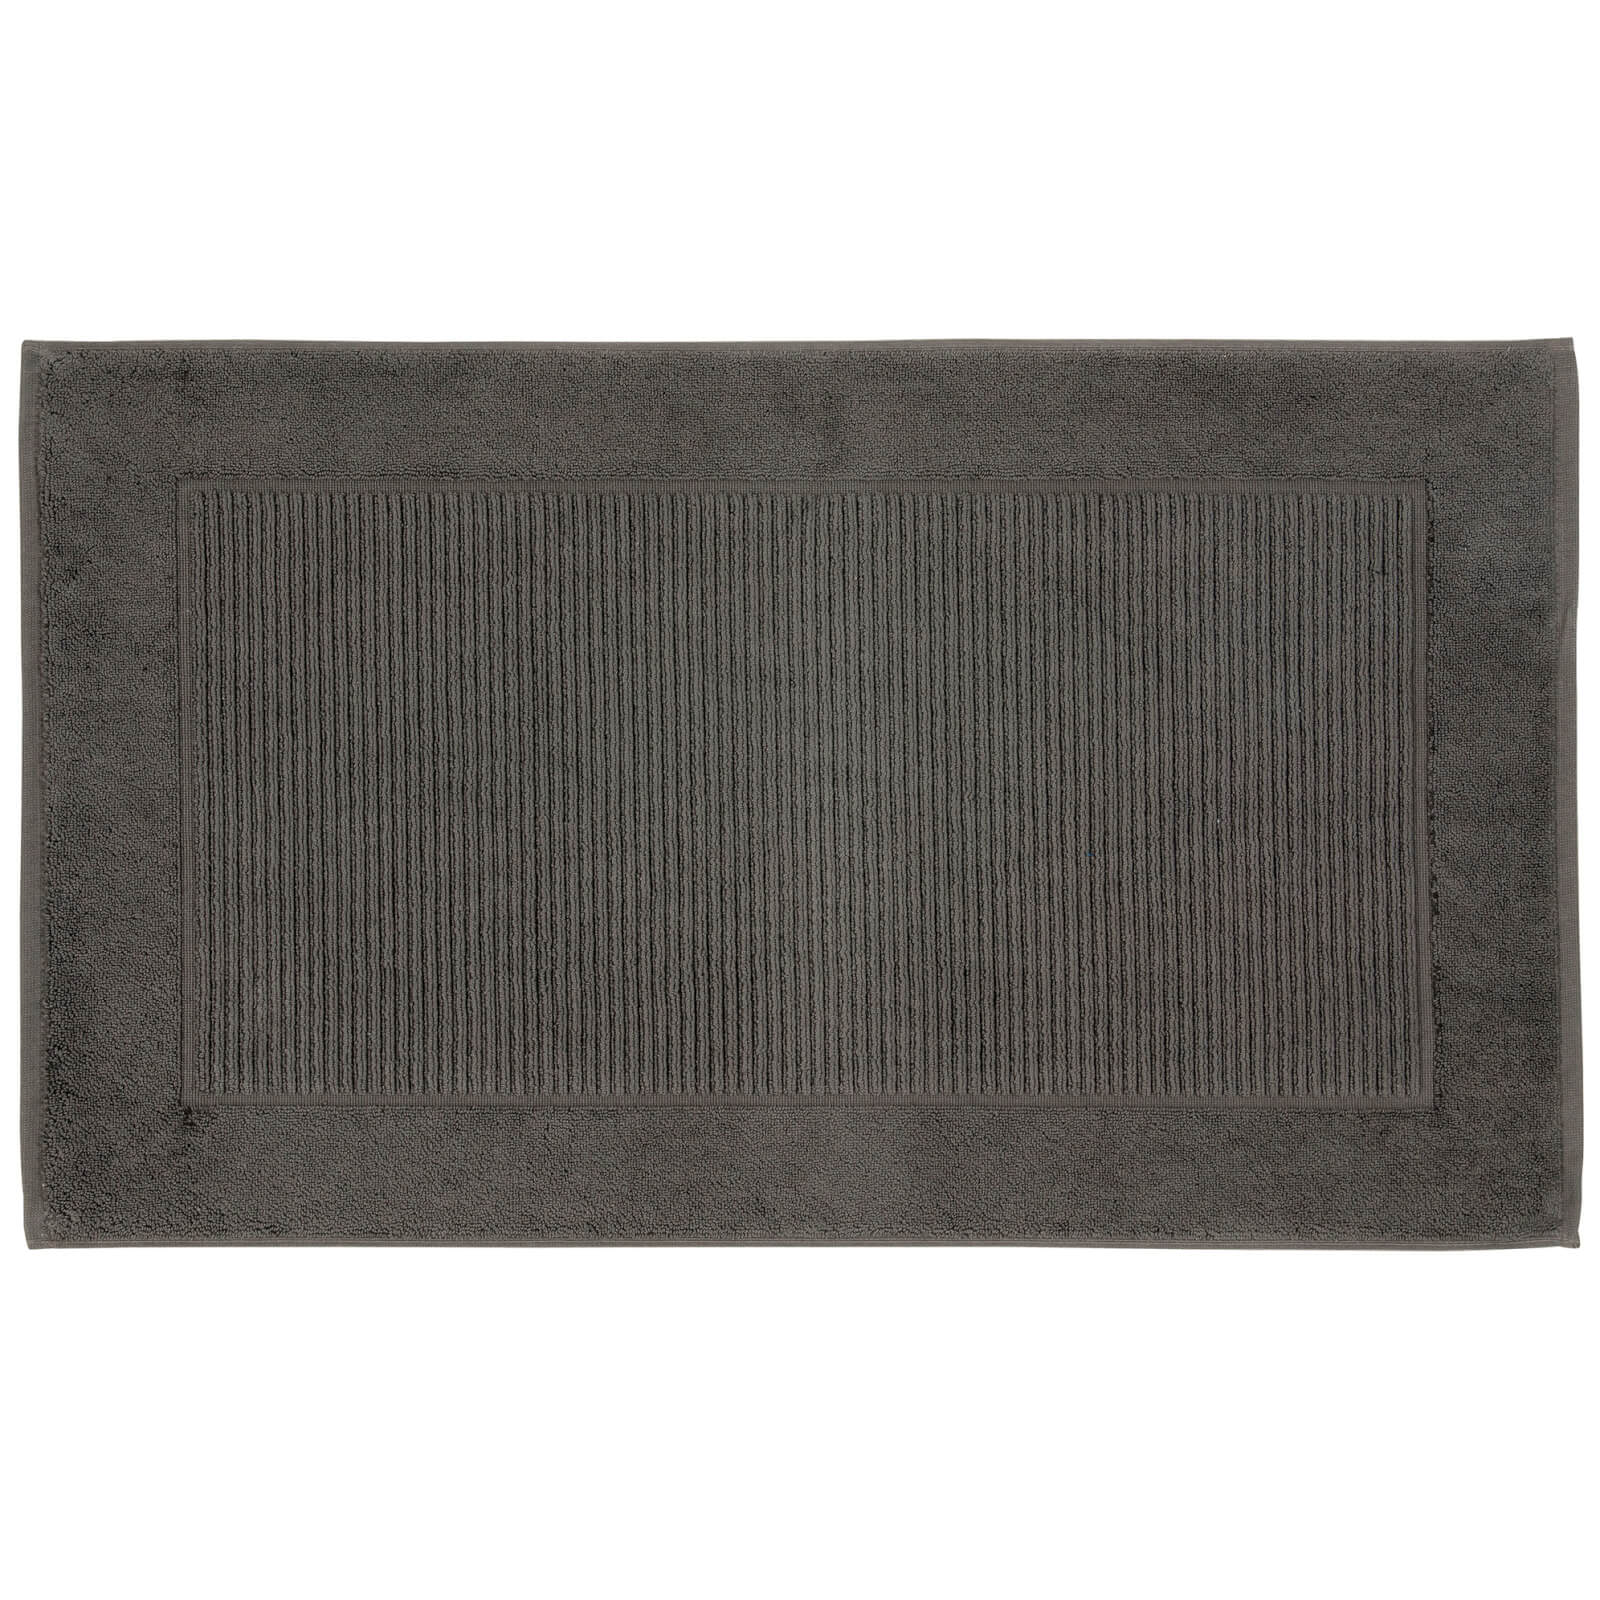 Christy Supreme Hygro Bath Mat - Set of 2 - Graphite